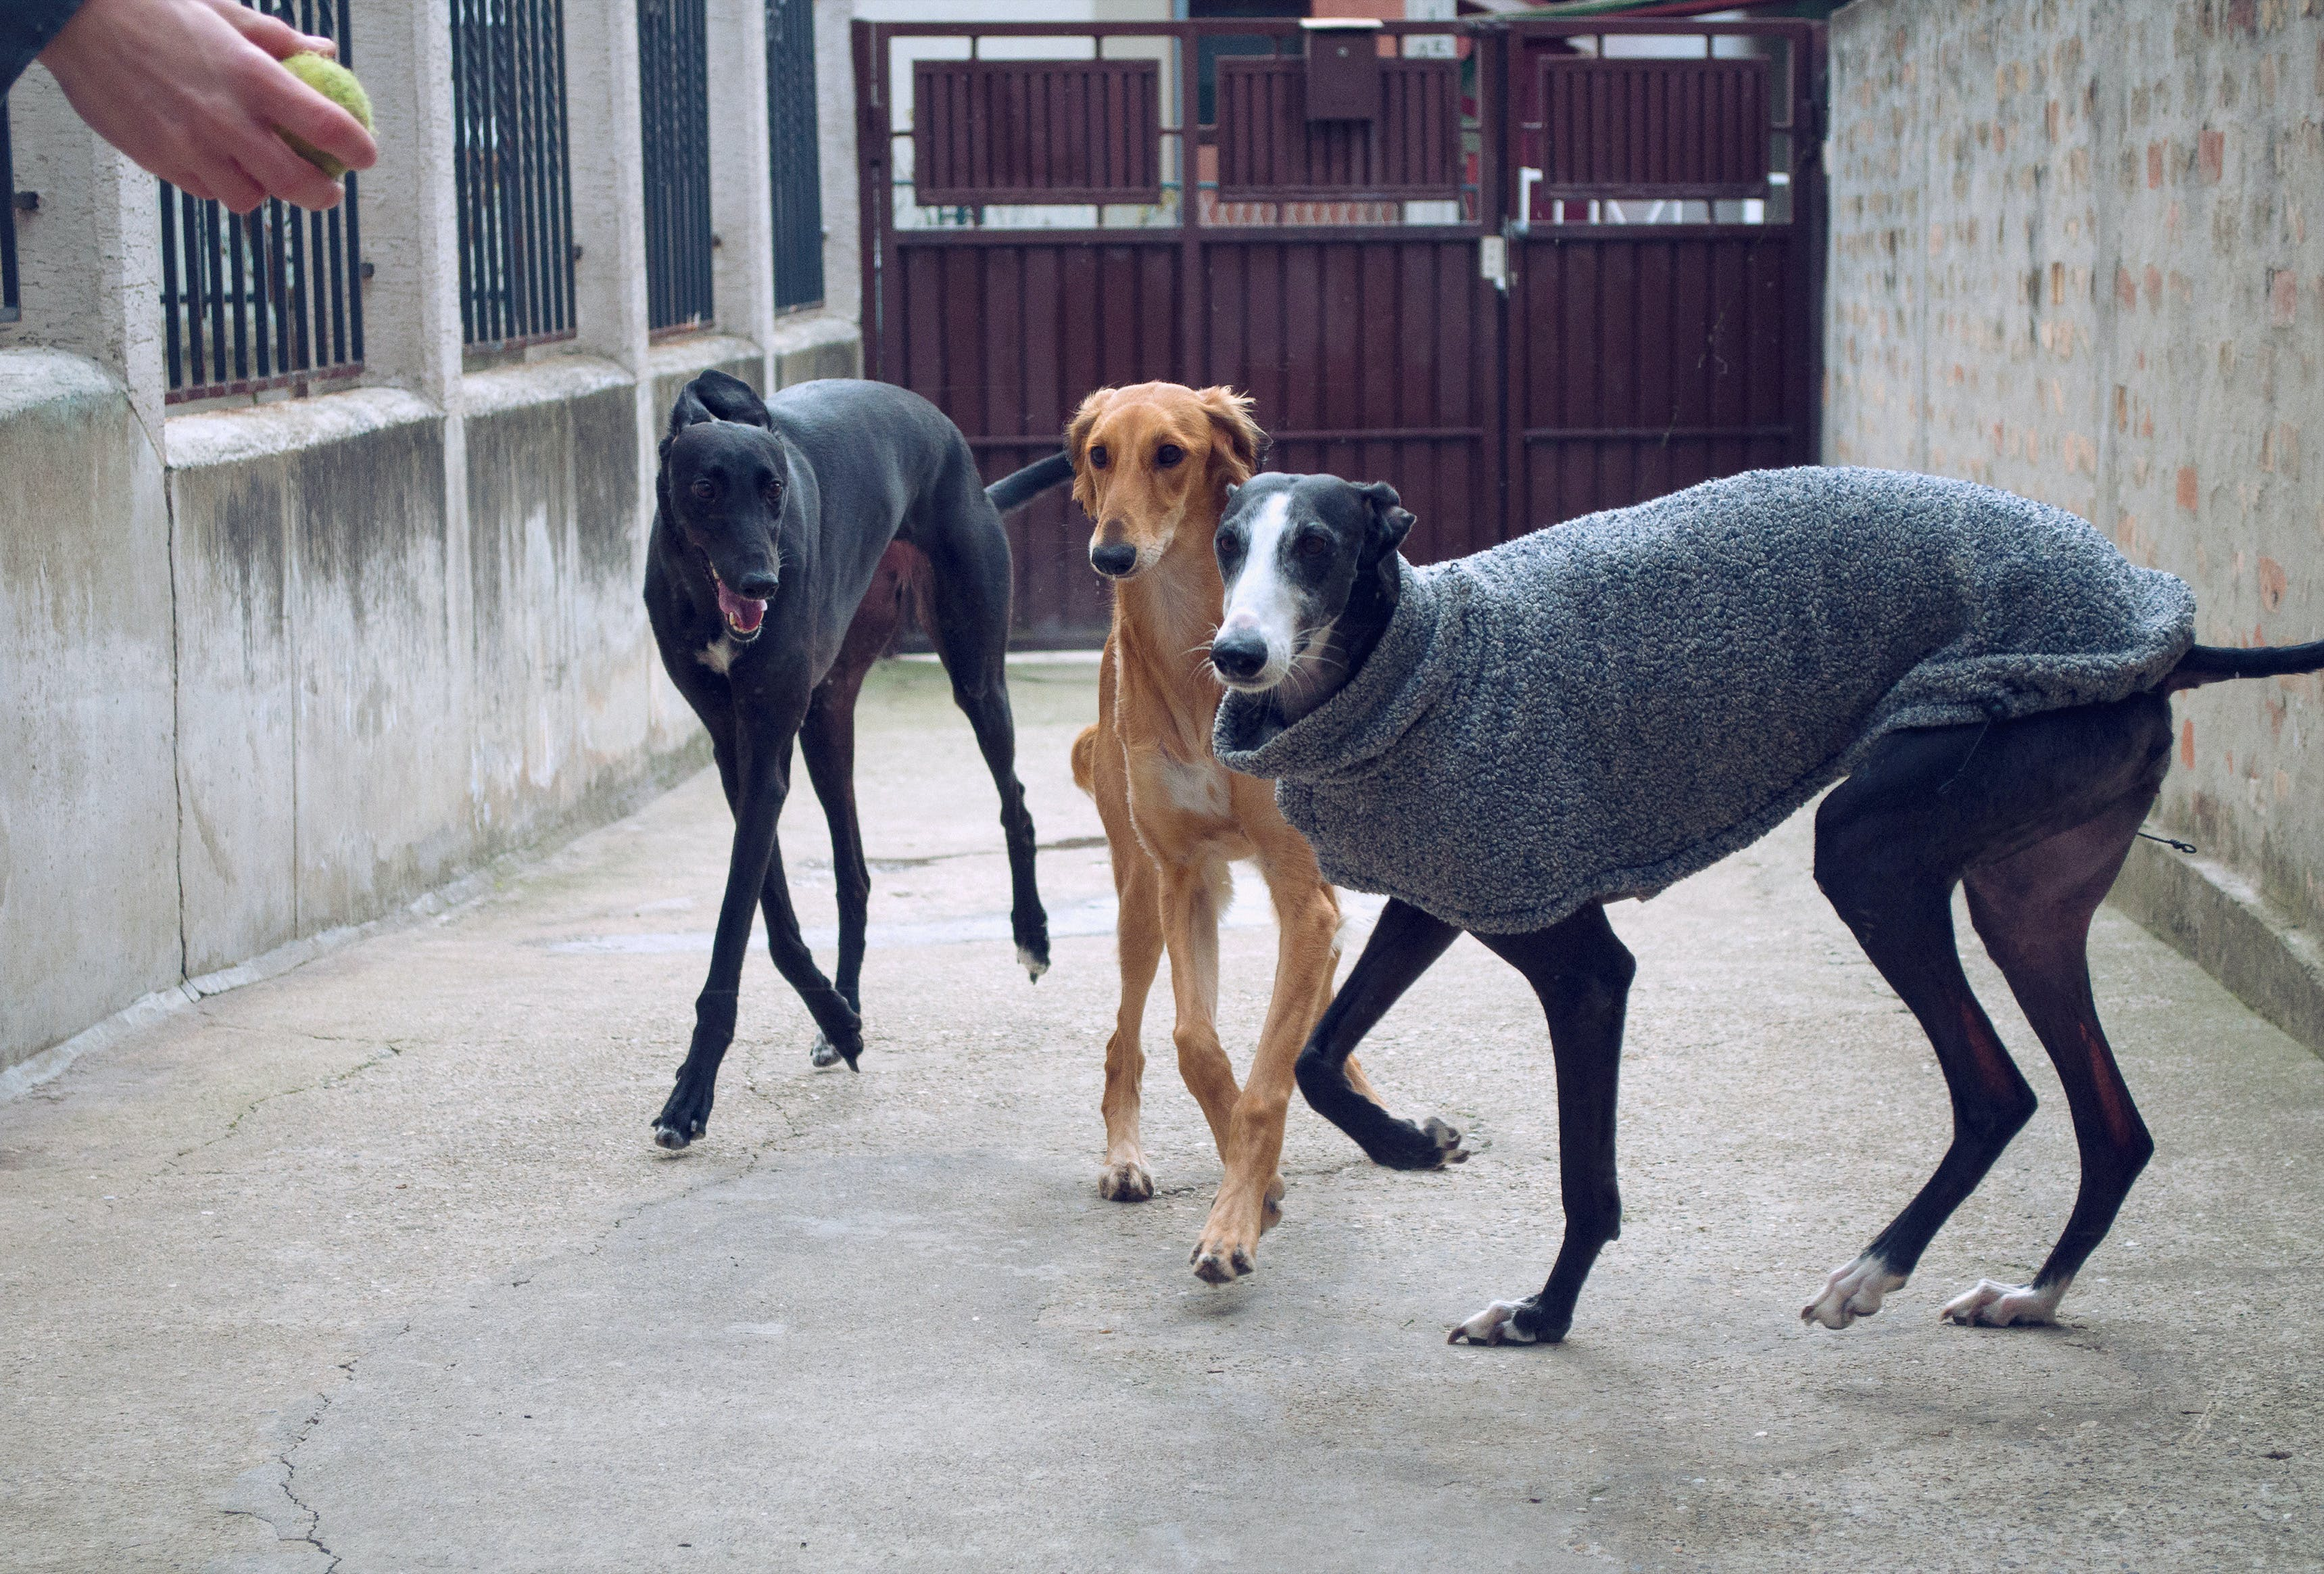 Free stock photo of adopted dogs, galgo, greyhound, hounds playing